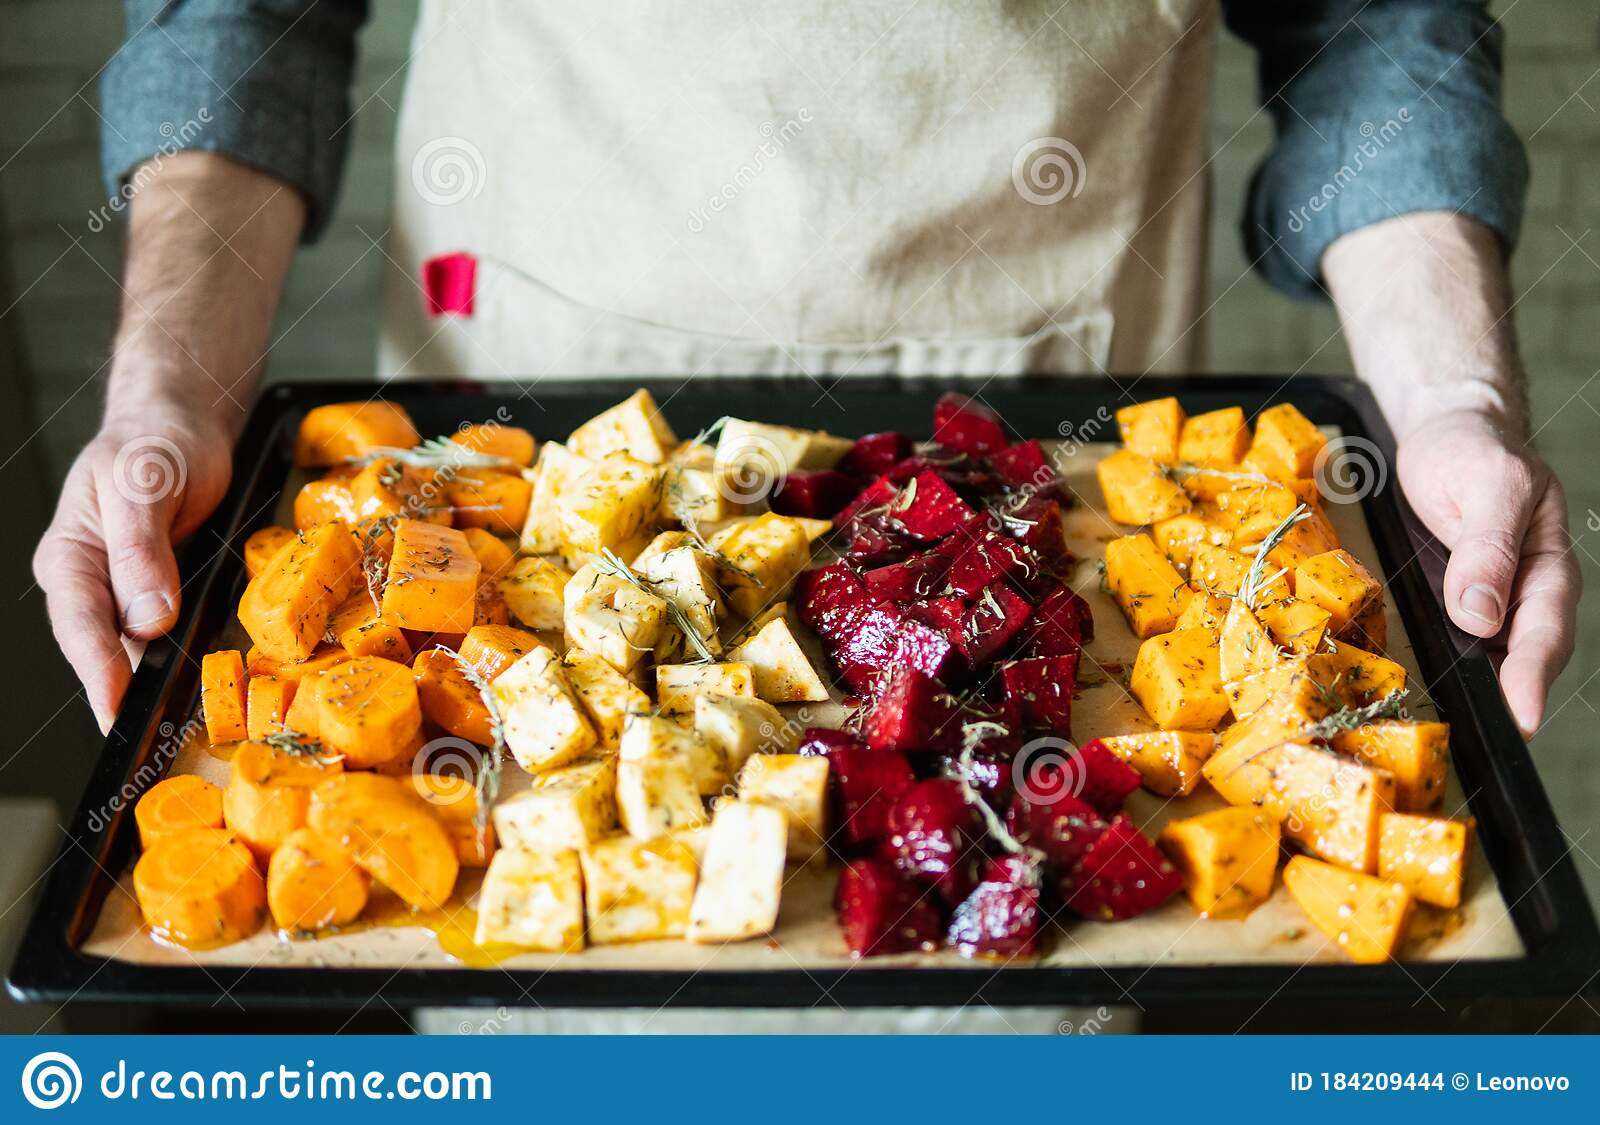 Gf is a vegetarian and i am not. Male Hands Holding Oven Tray With Vegetables Mix Vegetarian Man Cooking Sweet Potatoes And Other Veggies At Home Stock Photo Image Of Oven Male 184209444